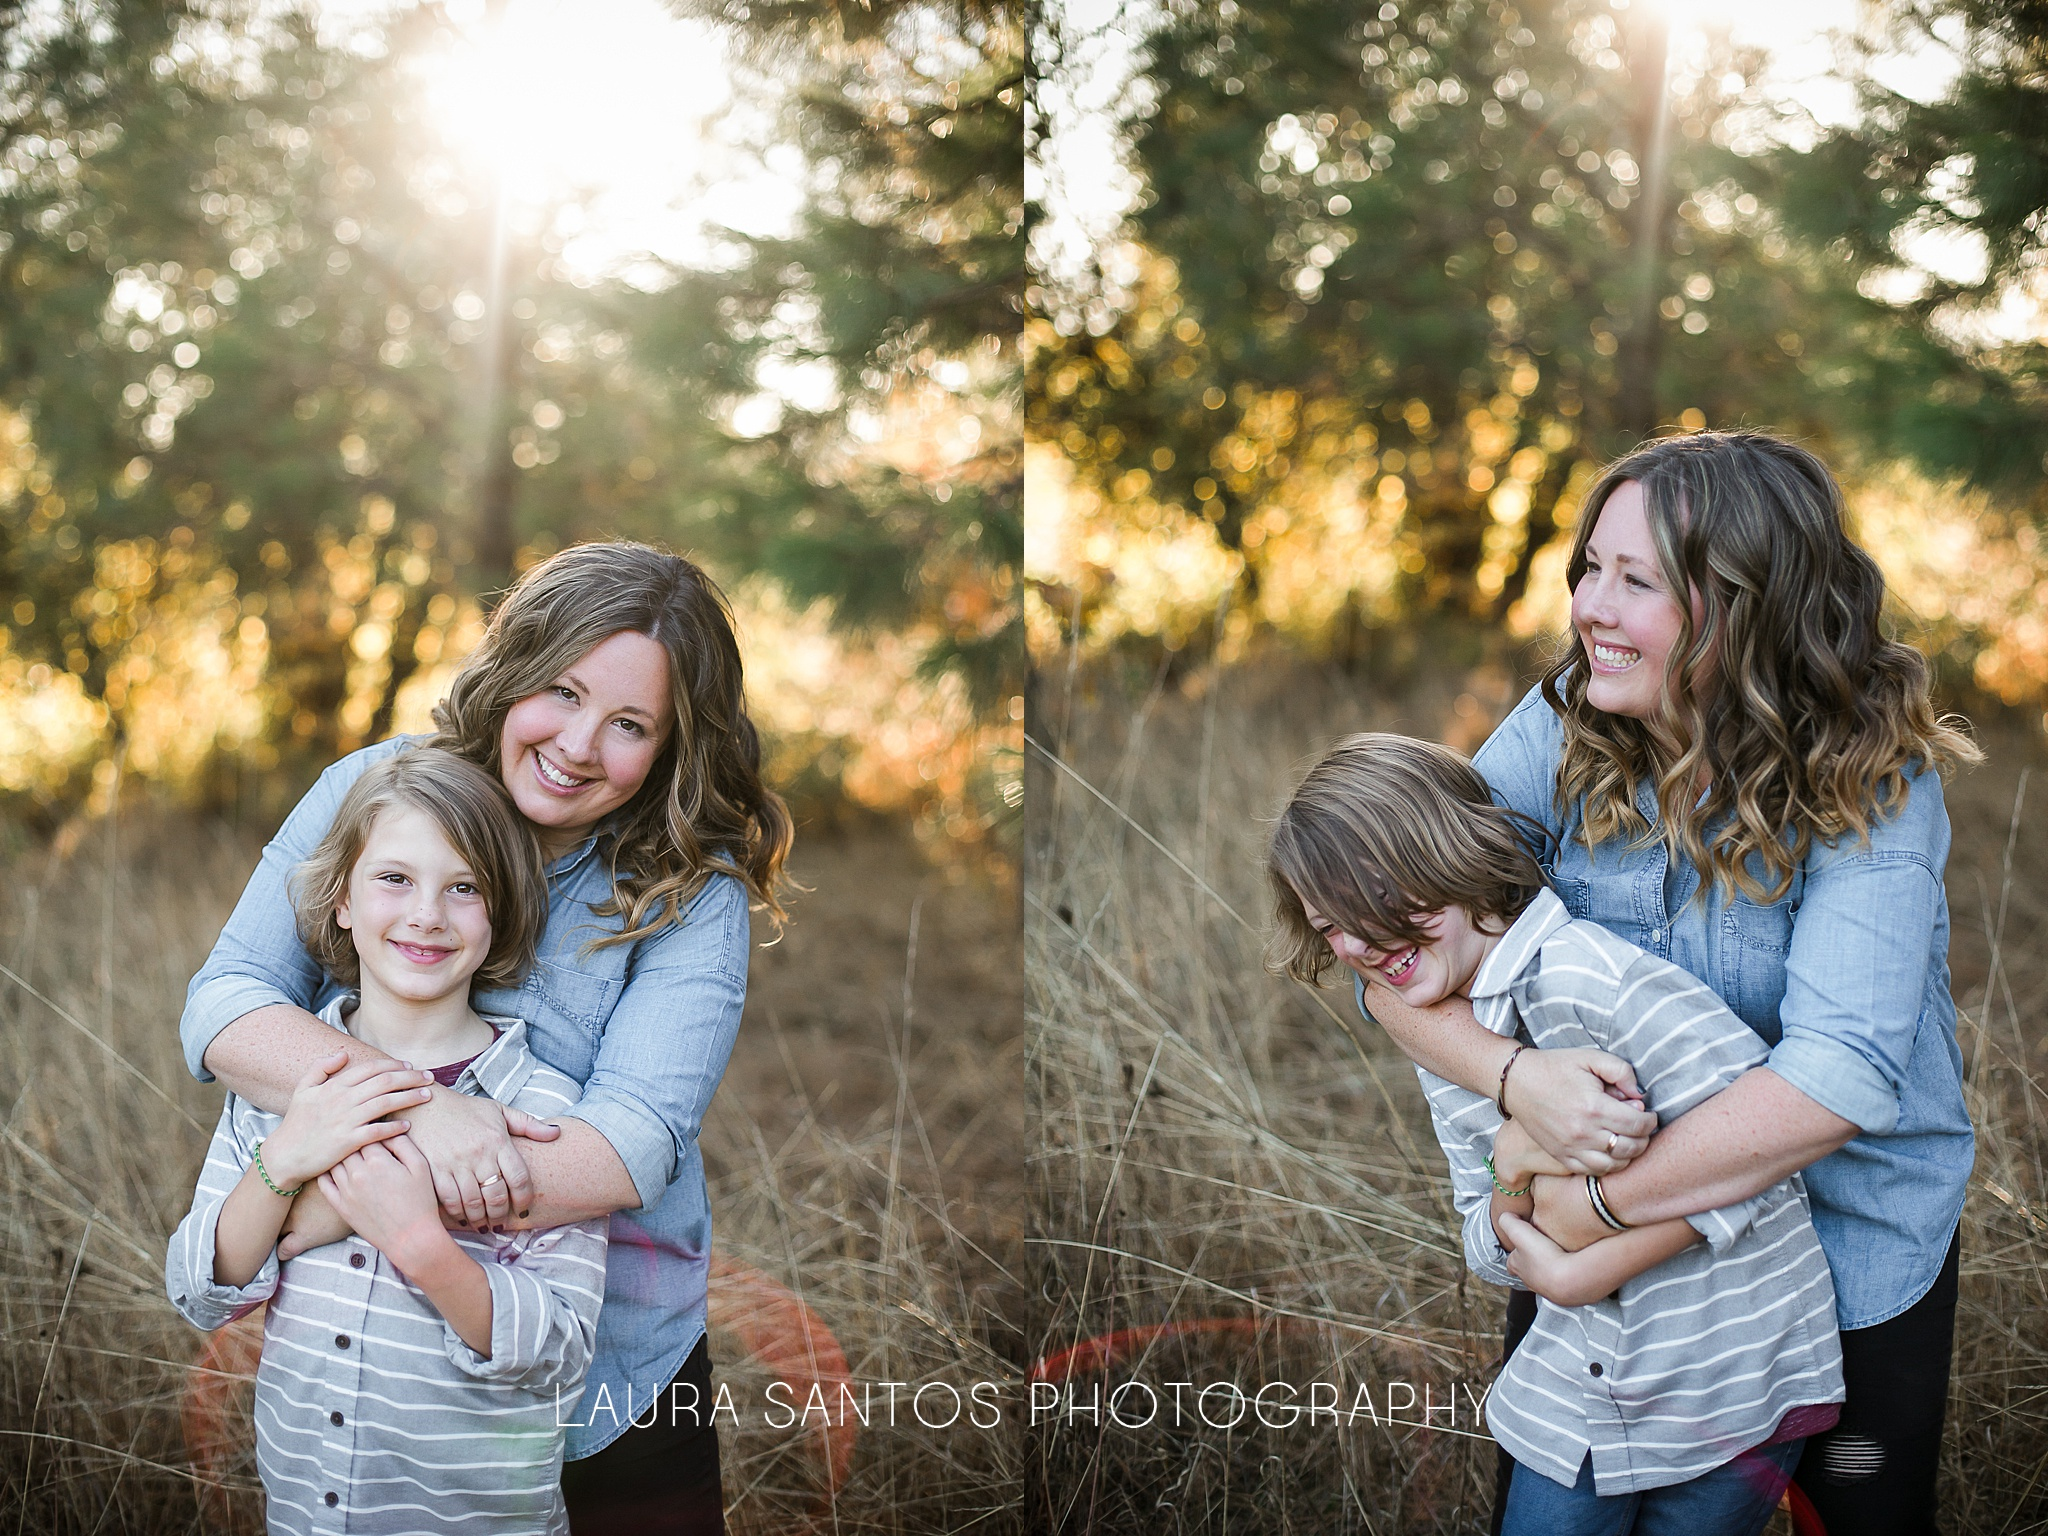 Laura Santos Photography Portland Oregon Family Photographer_0890.jpg